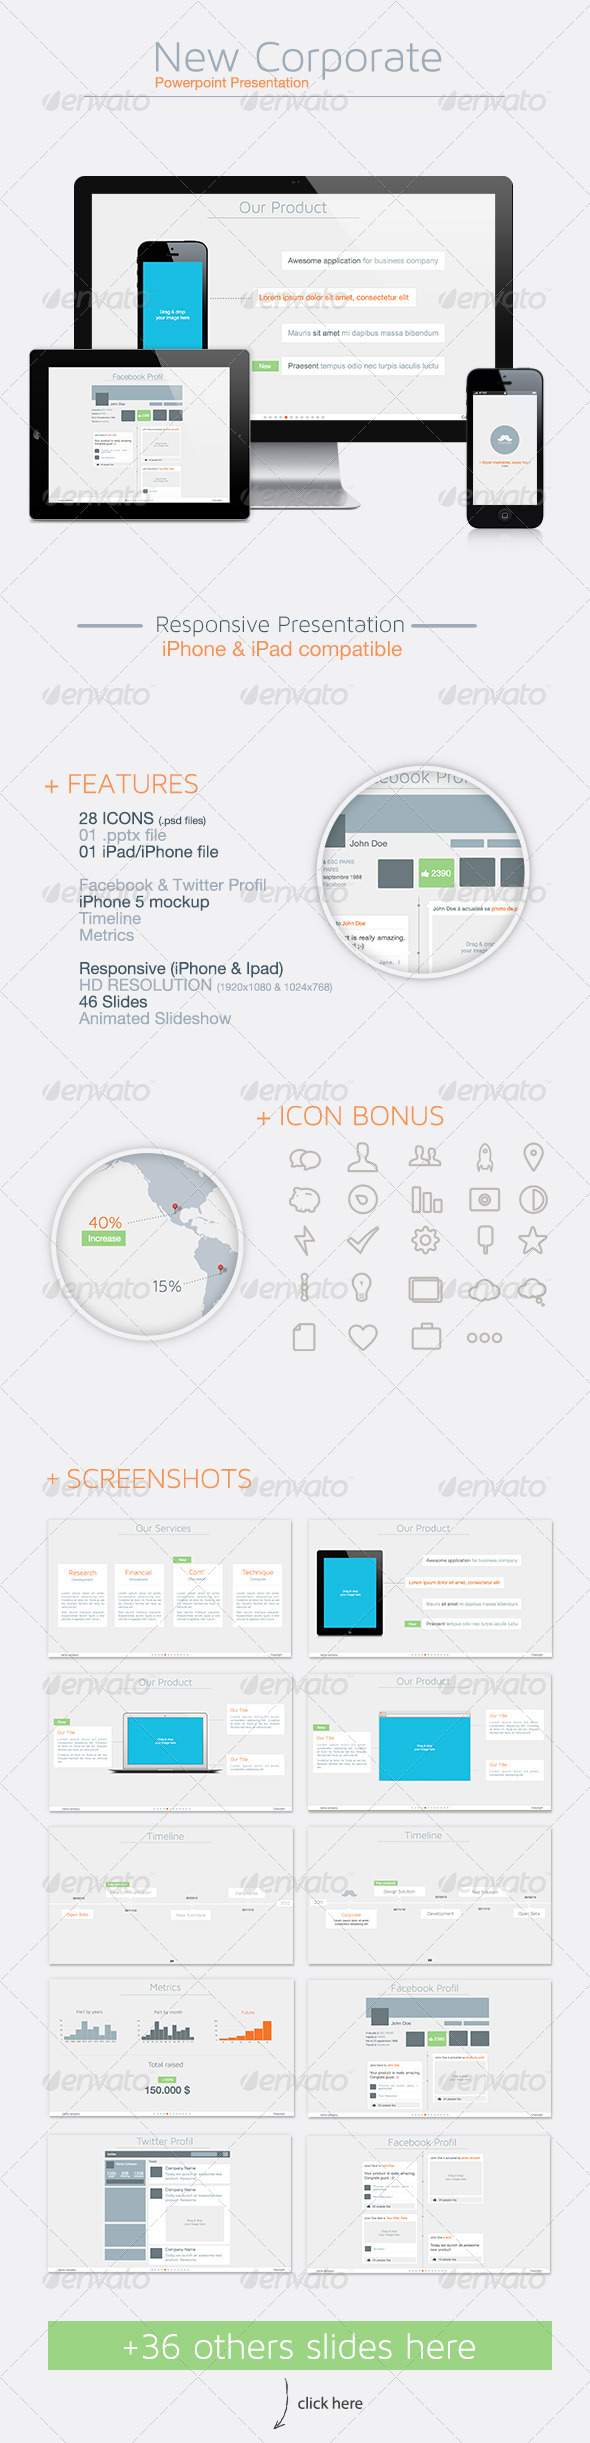 GraphicRiver New Corporate Powerpoint Presentation 3716077